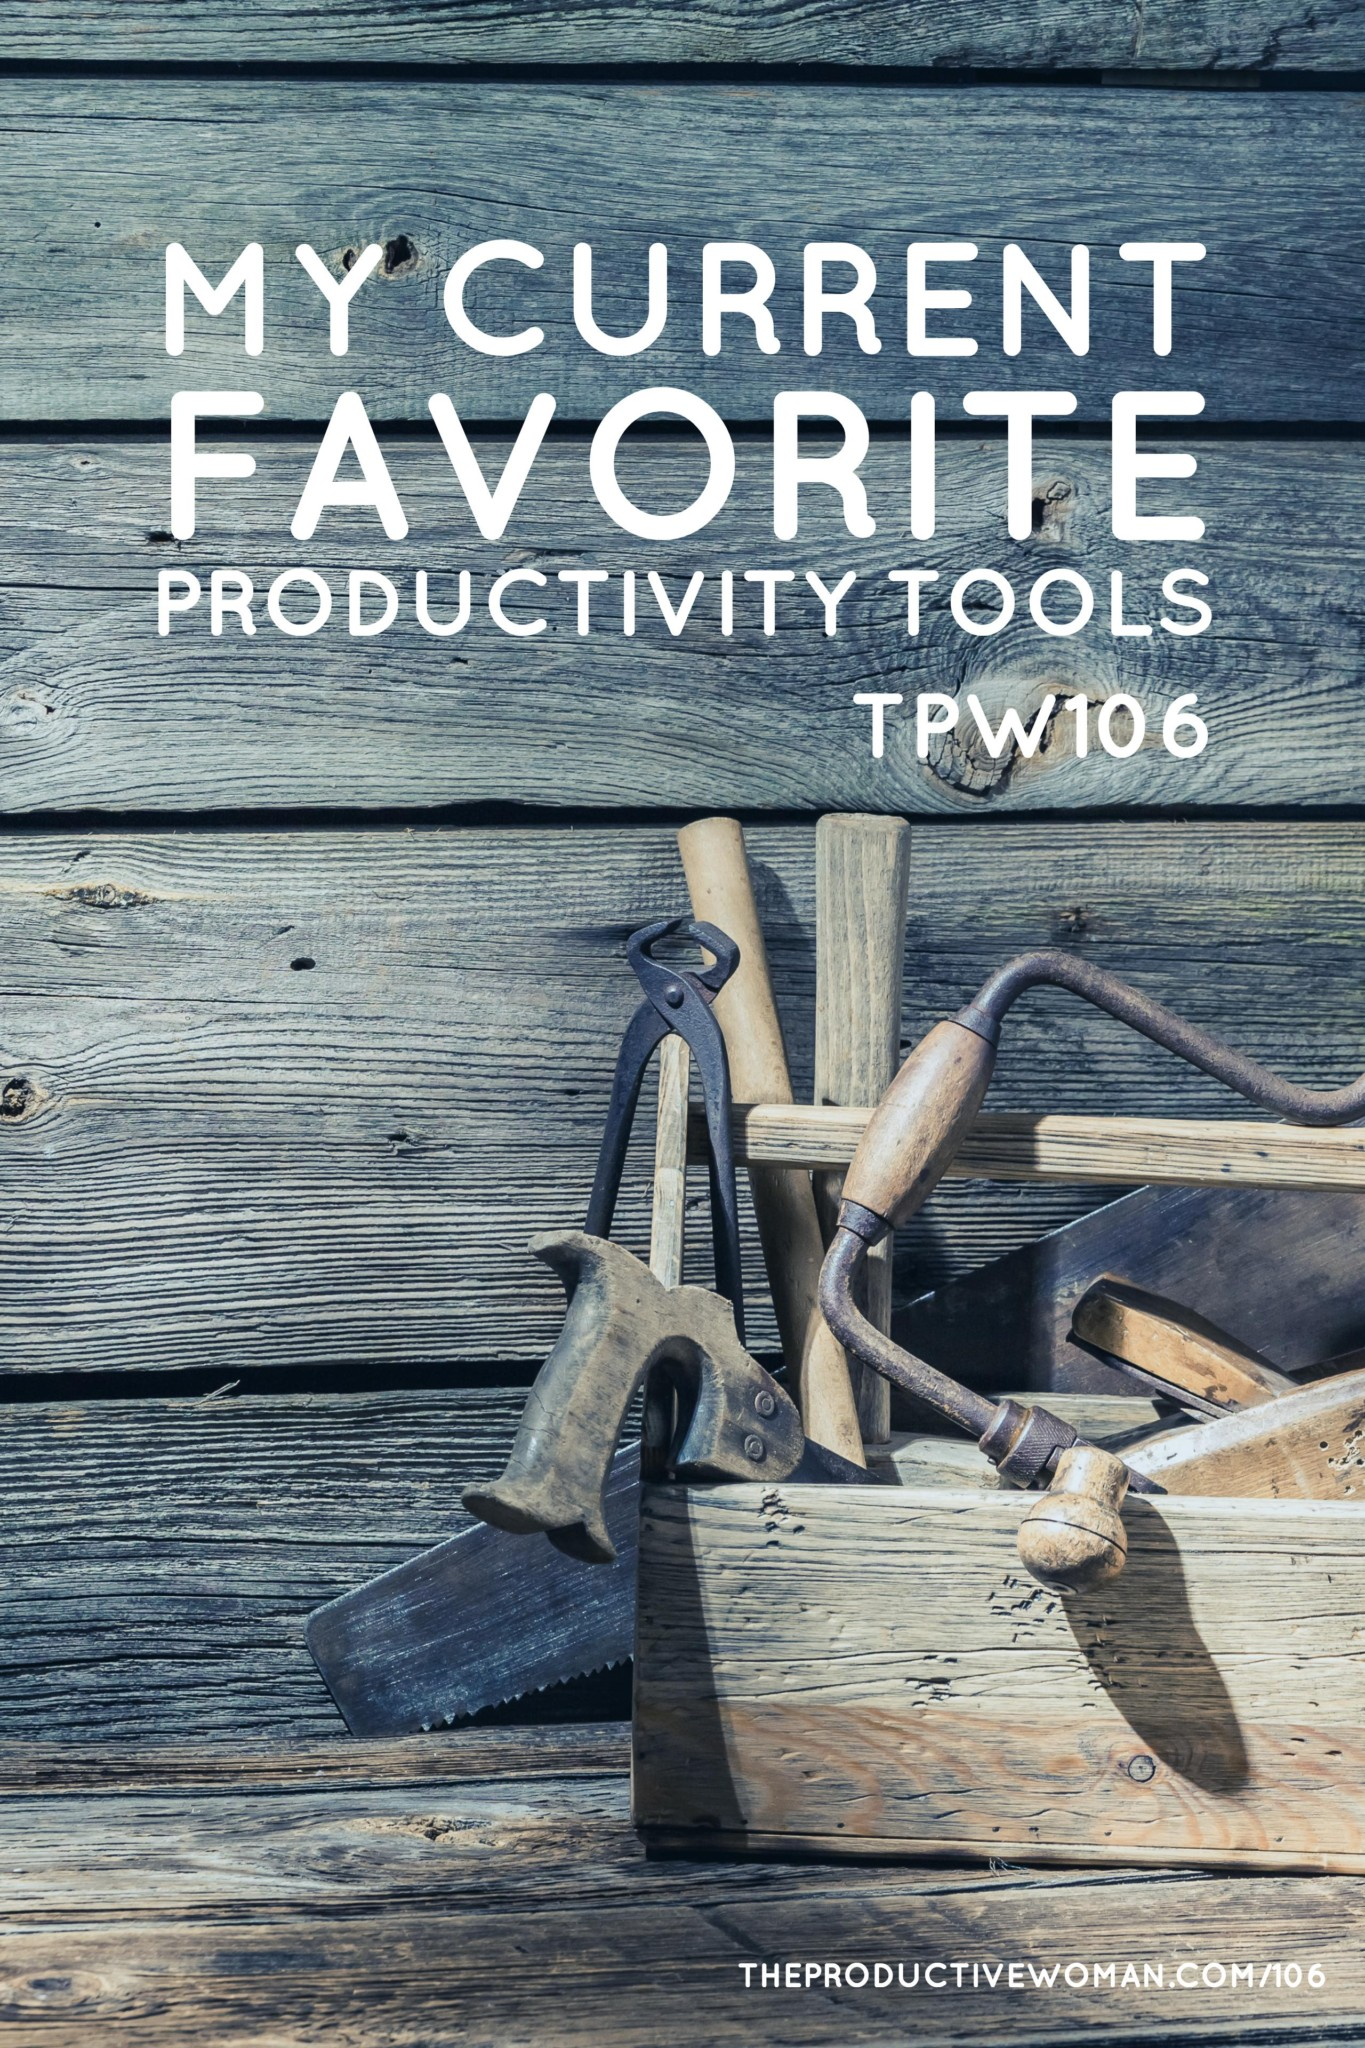 Episode 106 of The Productive Woman podcast features some of my current favorite productivity tools. I'd love to hear what tools help you get the right stuff done.